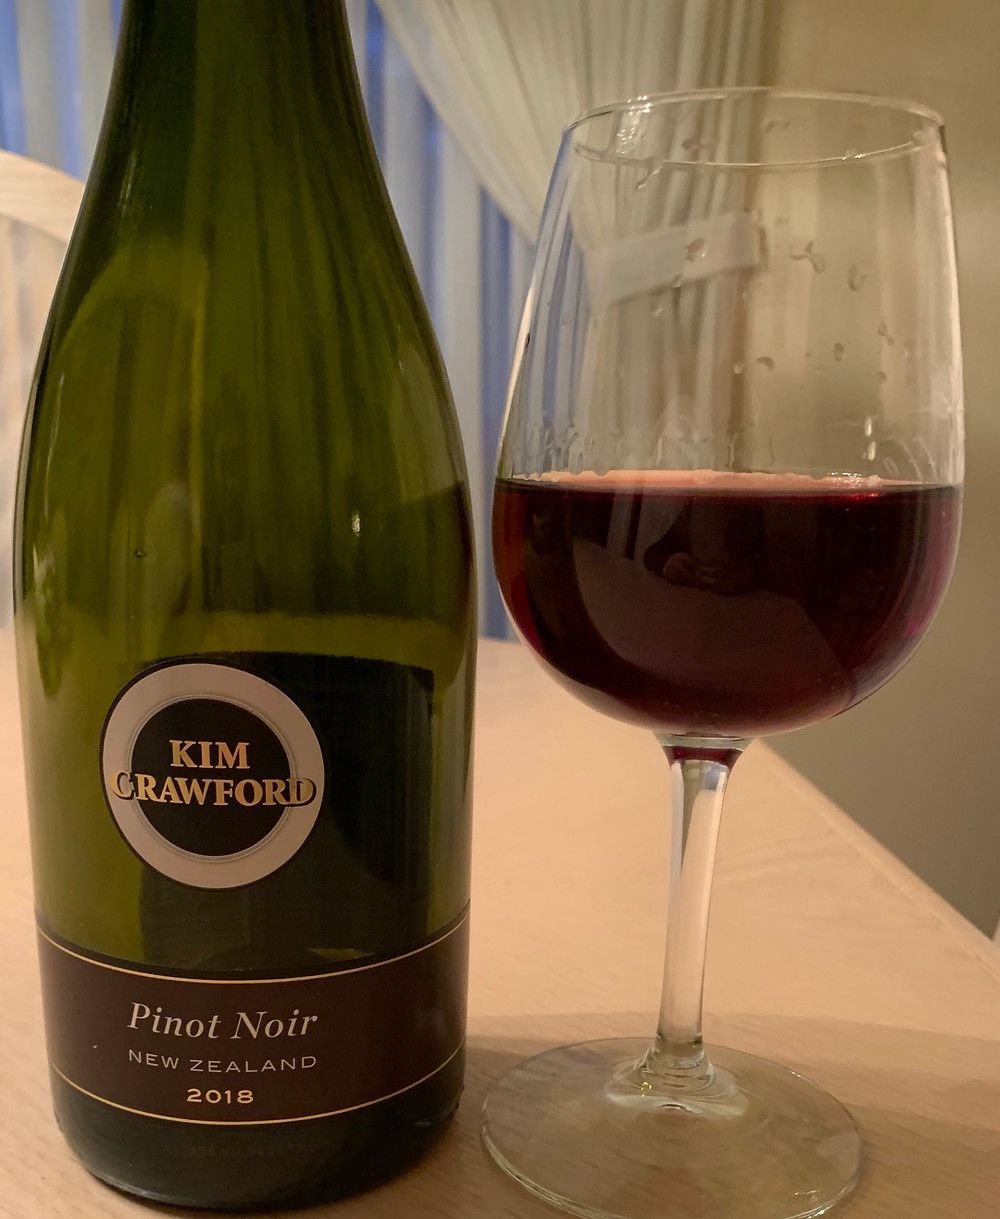 Costco Kim Crawford 2018 New Zealand Pinot Noir